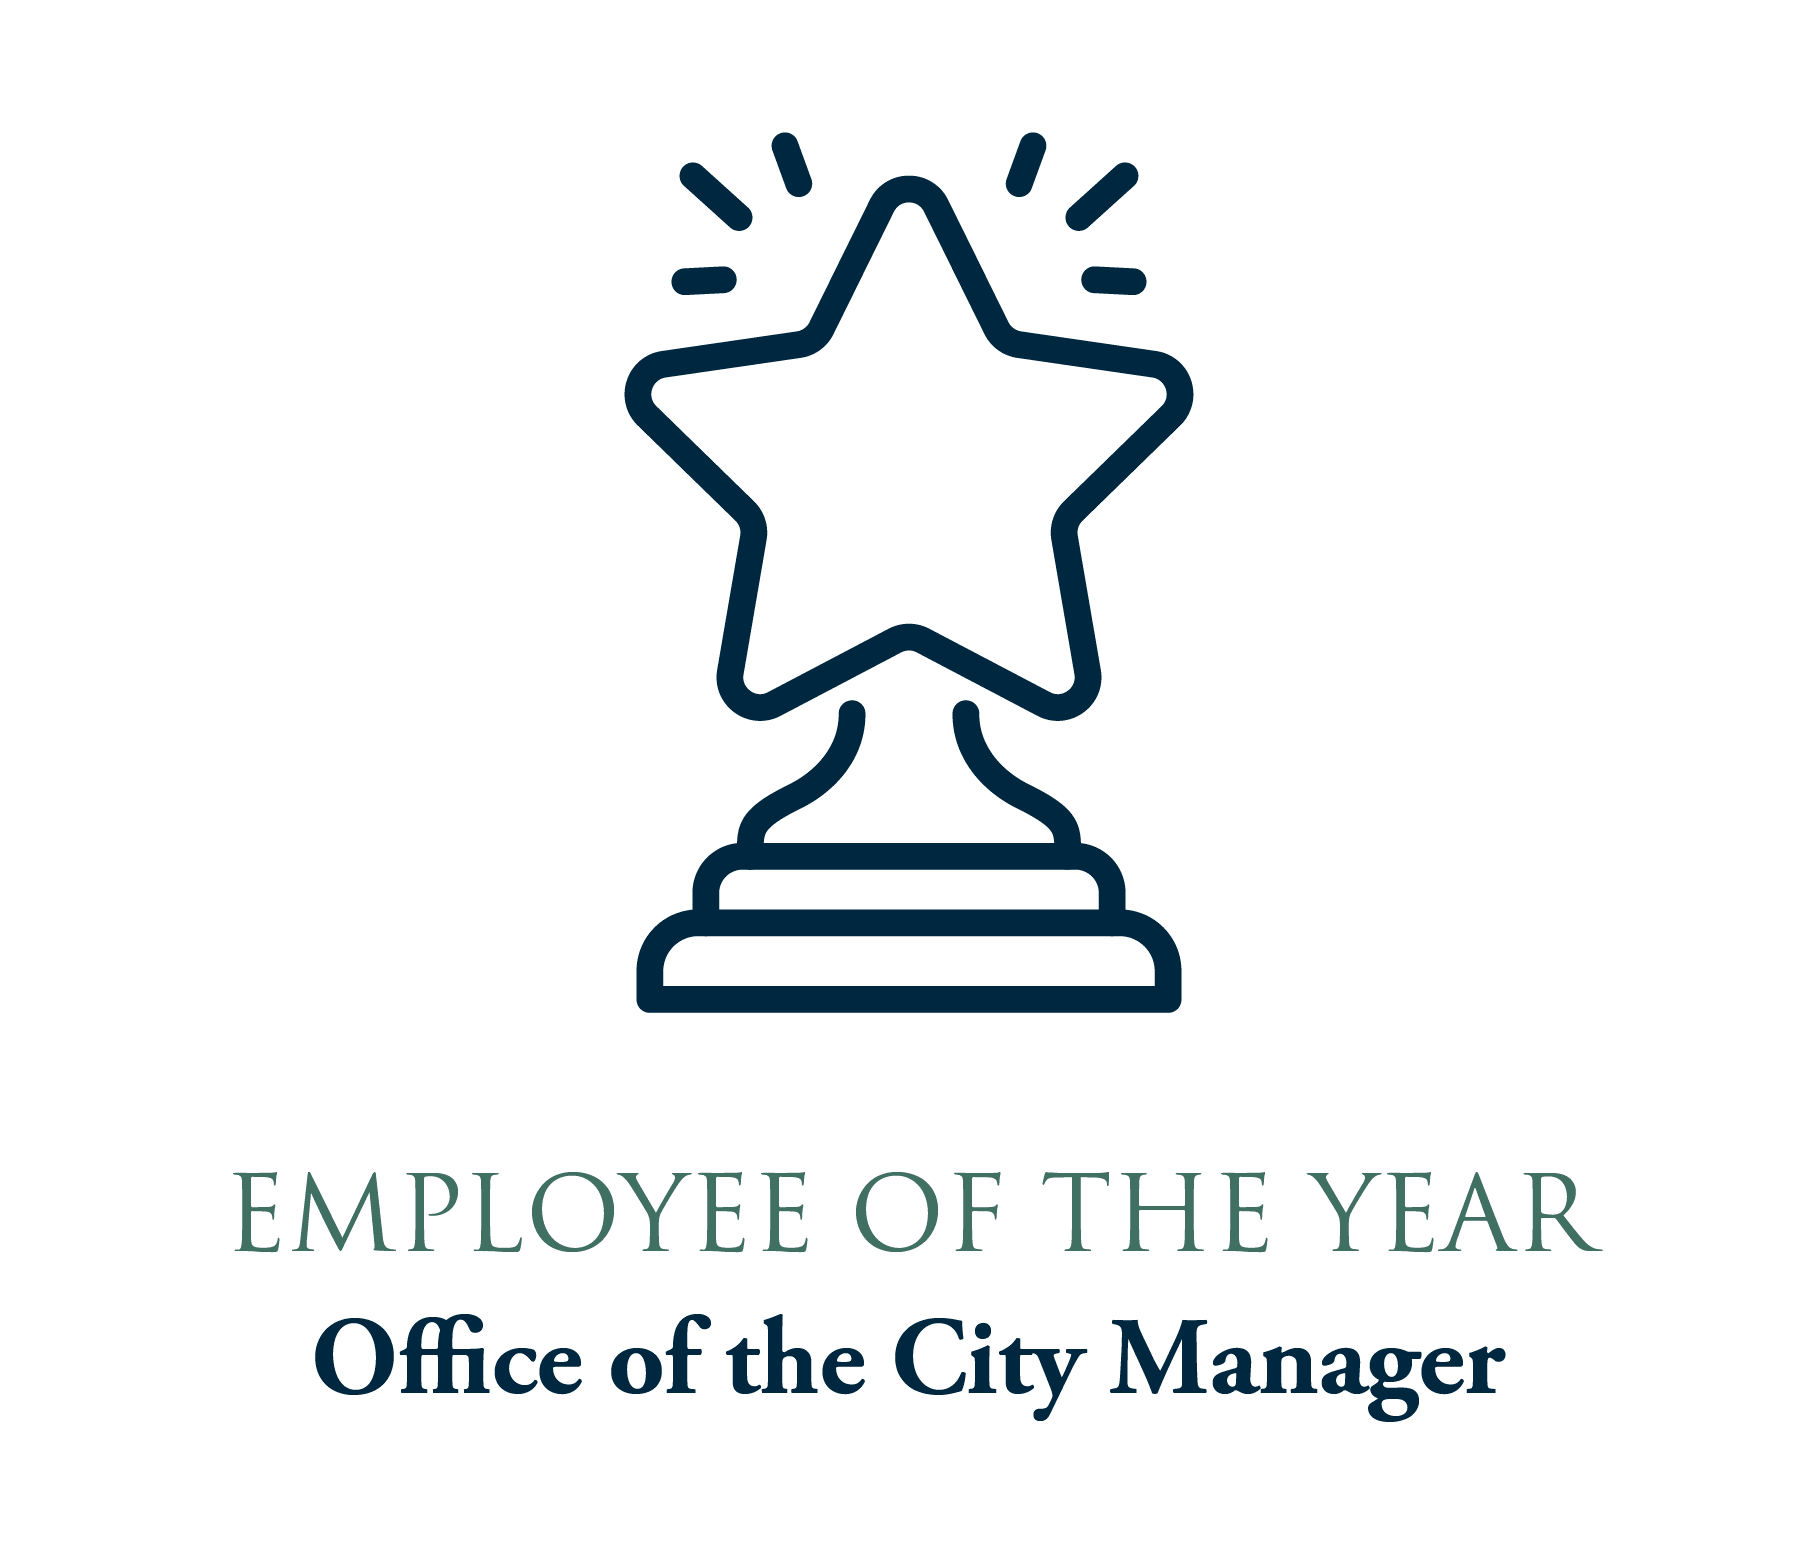 Employee of the Year graphic with line drawing trophy